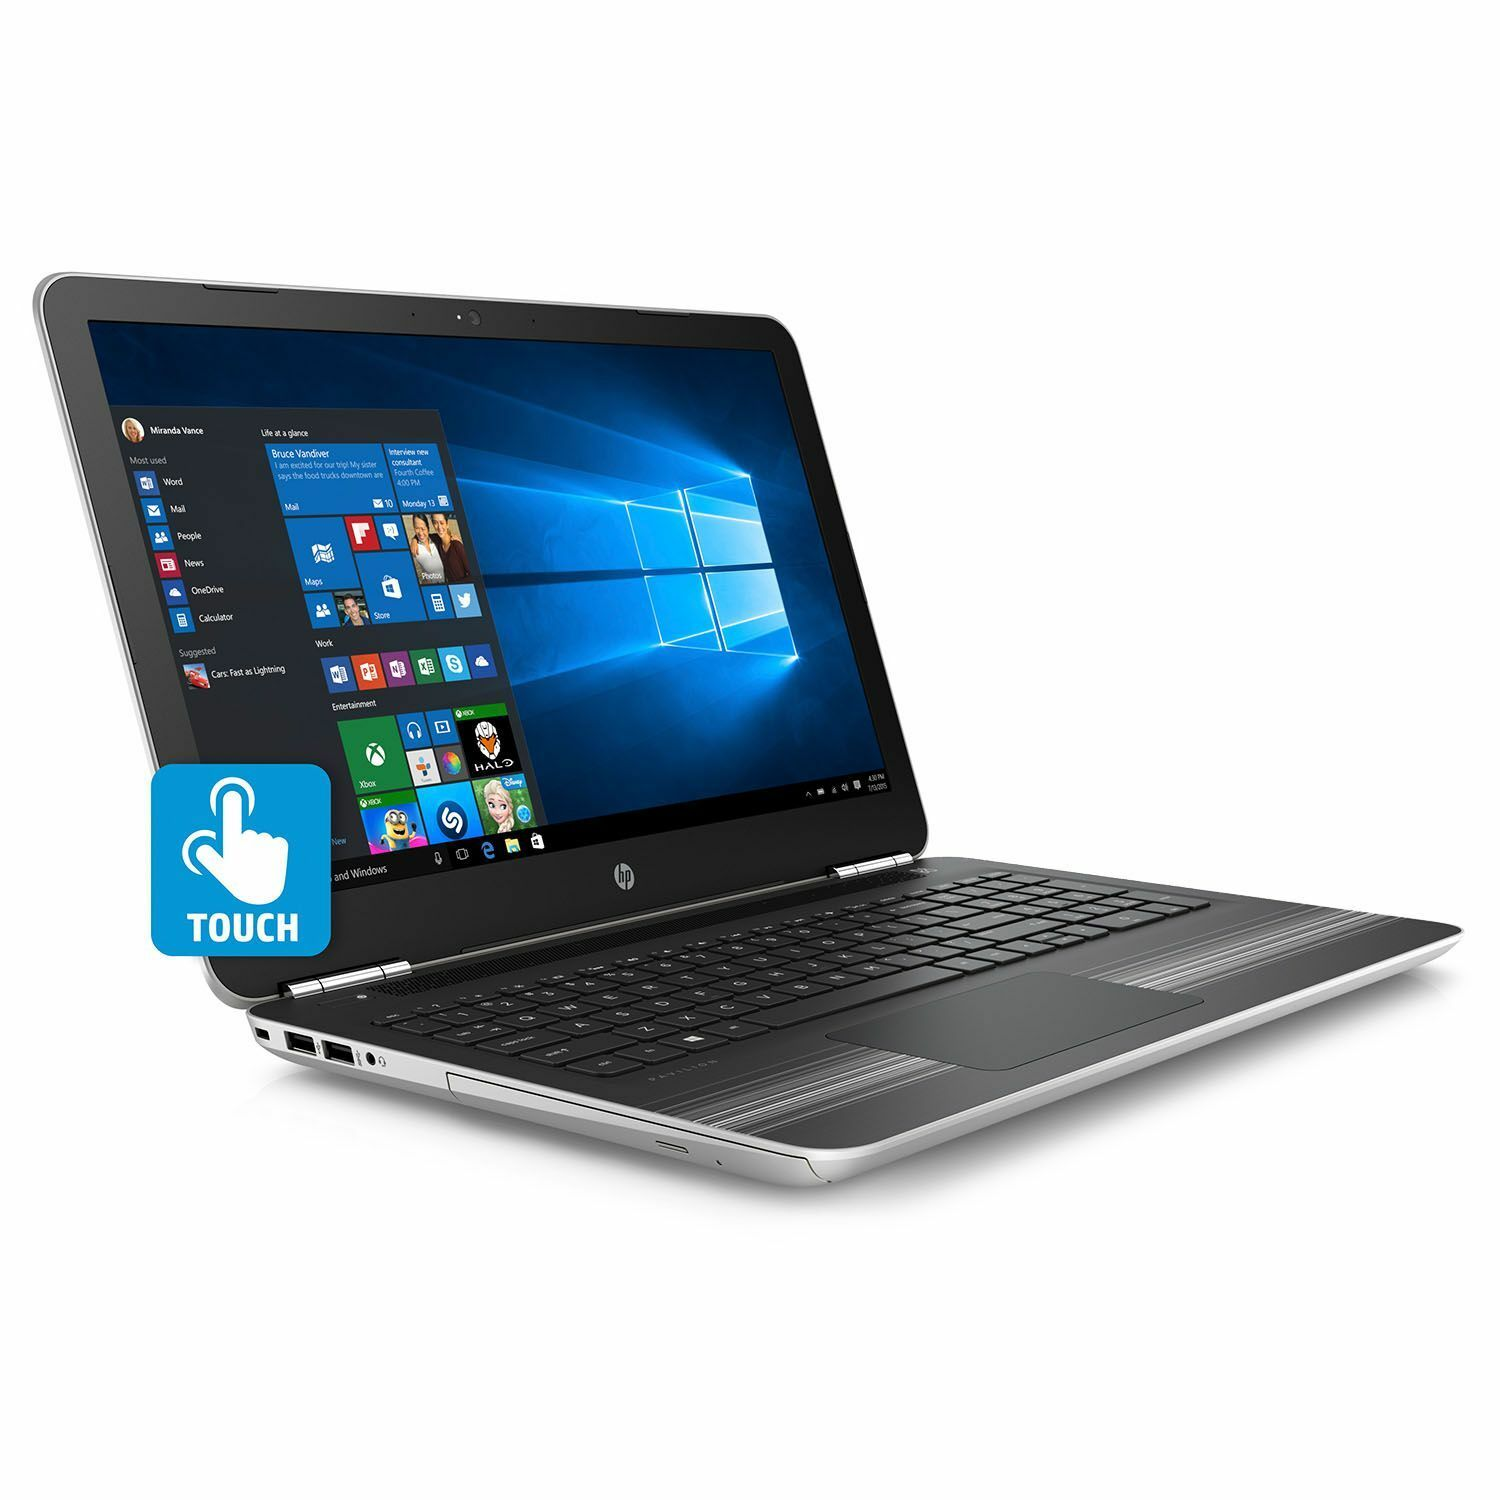 HP Pavillion 15-au057cl Touch 6th Gen i5 8GB Ram 1TB Hdd Win 10 1Year Warranty By Ebay @ Rs.37,990